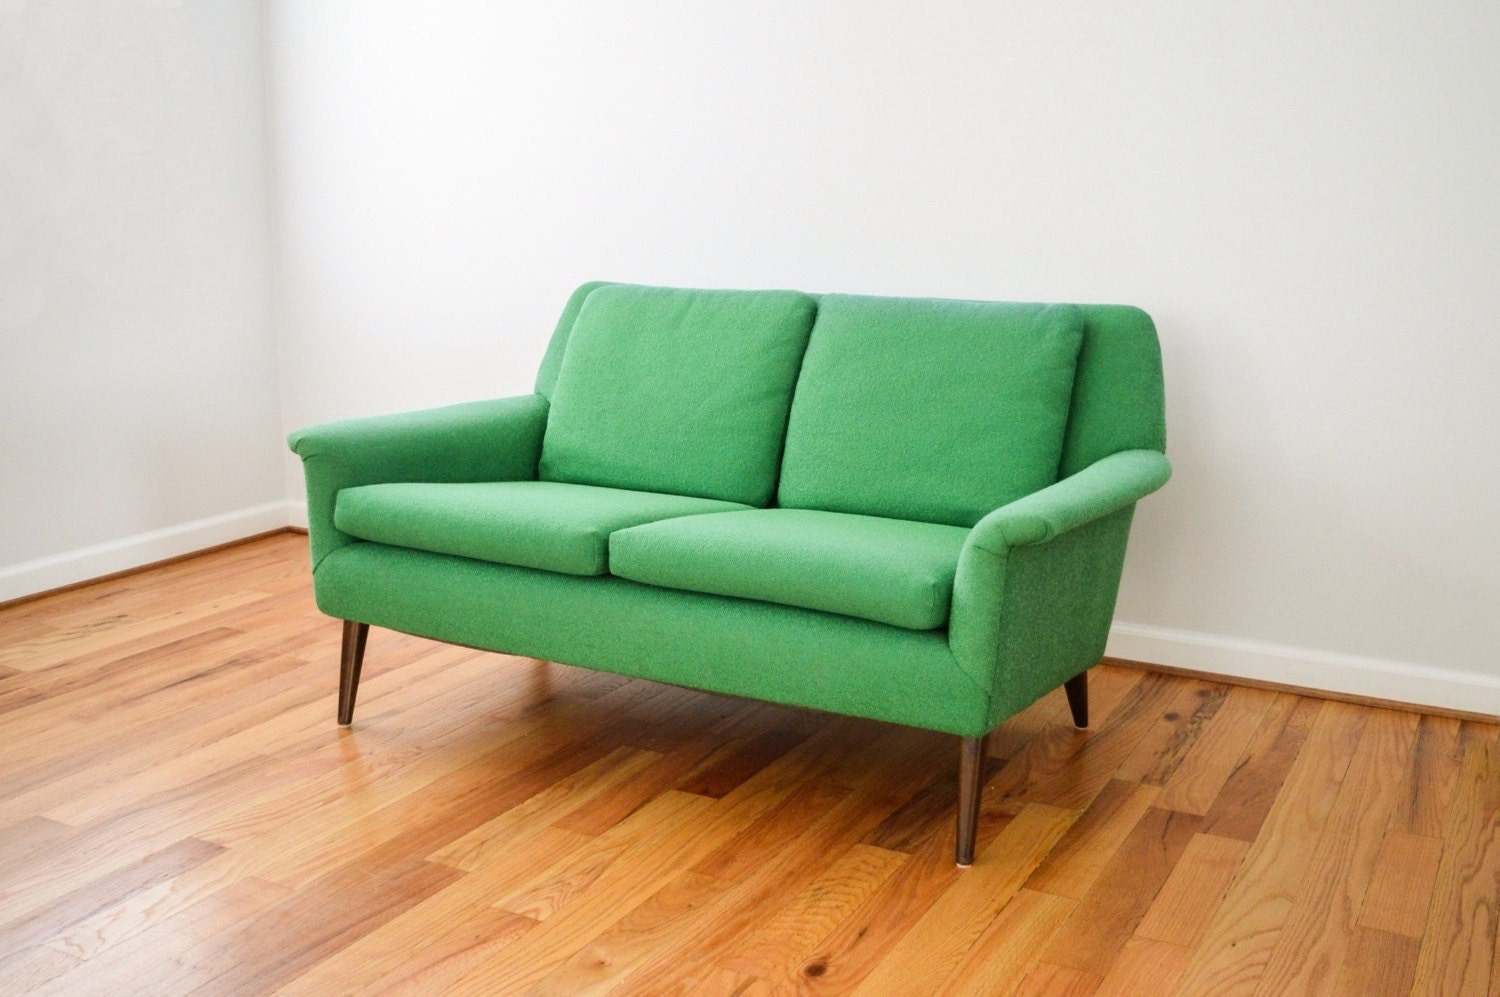 mid century sofa loveseat couch beautiful swedish mid. Black Bedroom Furniture Sets. Home Design Ideas